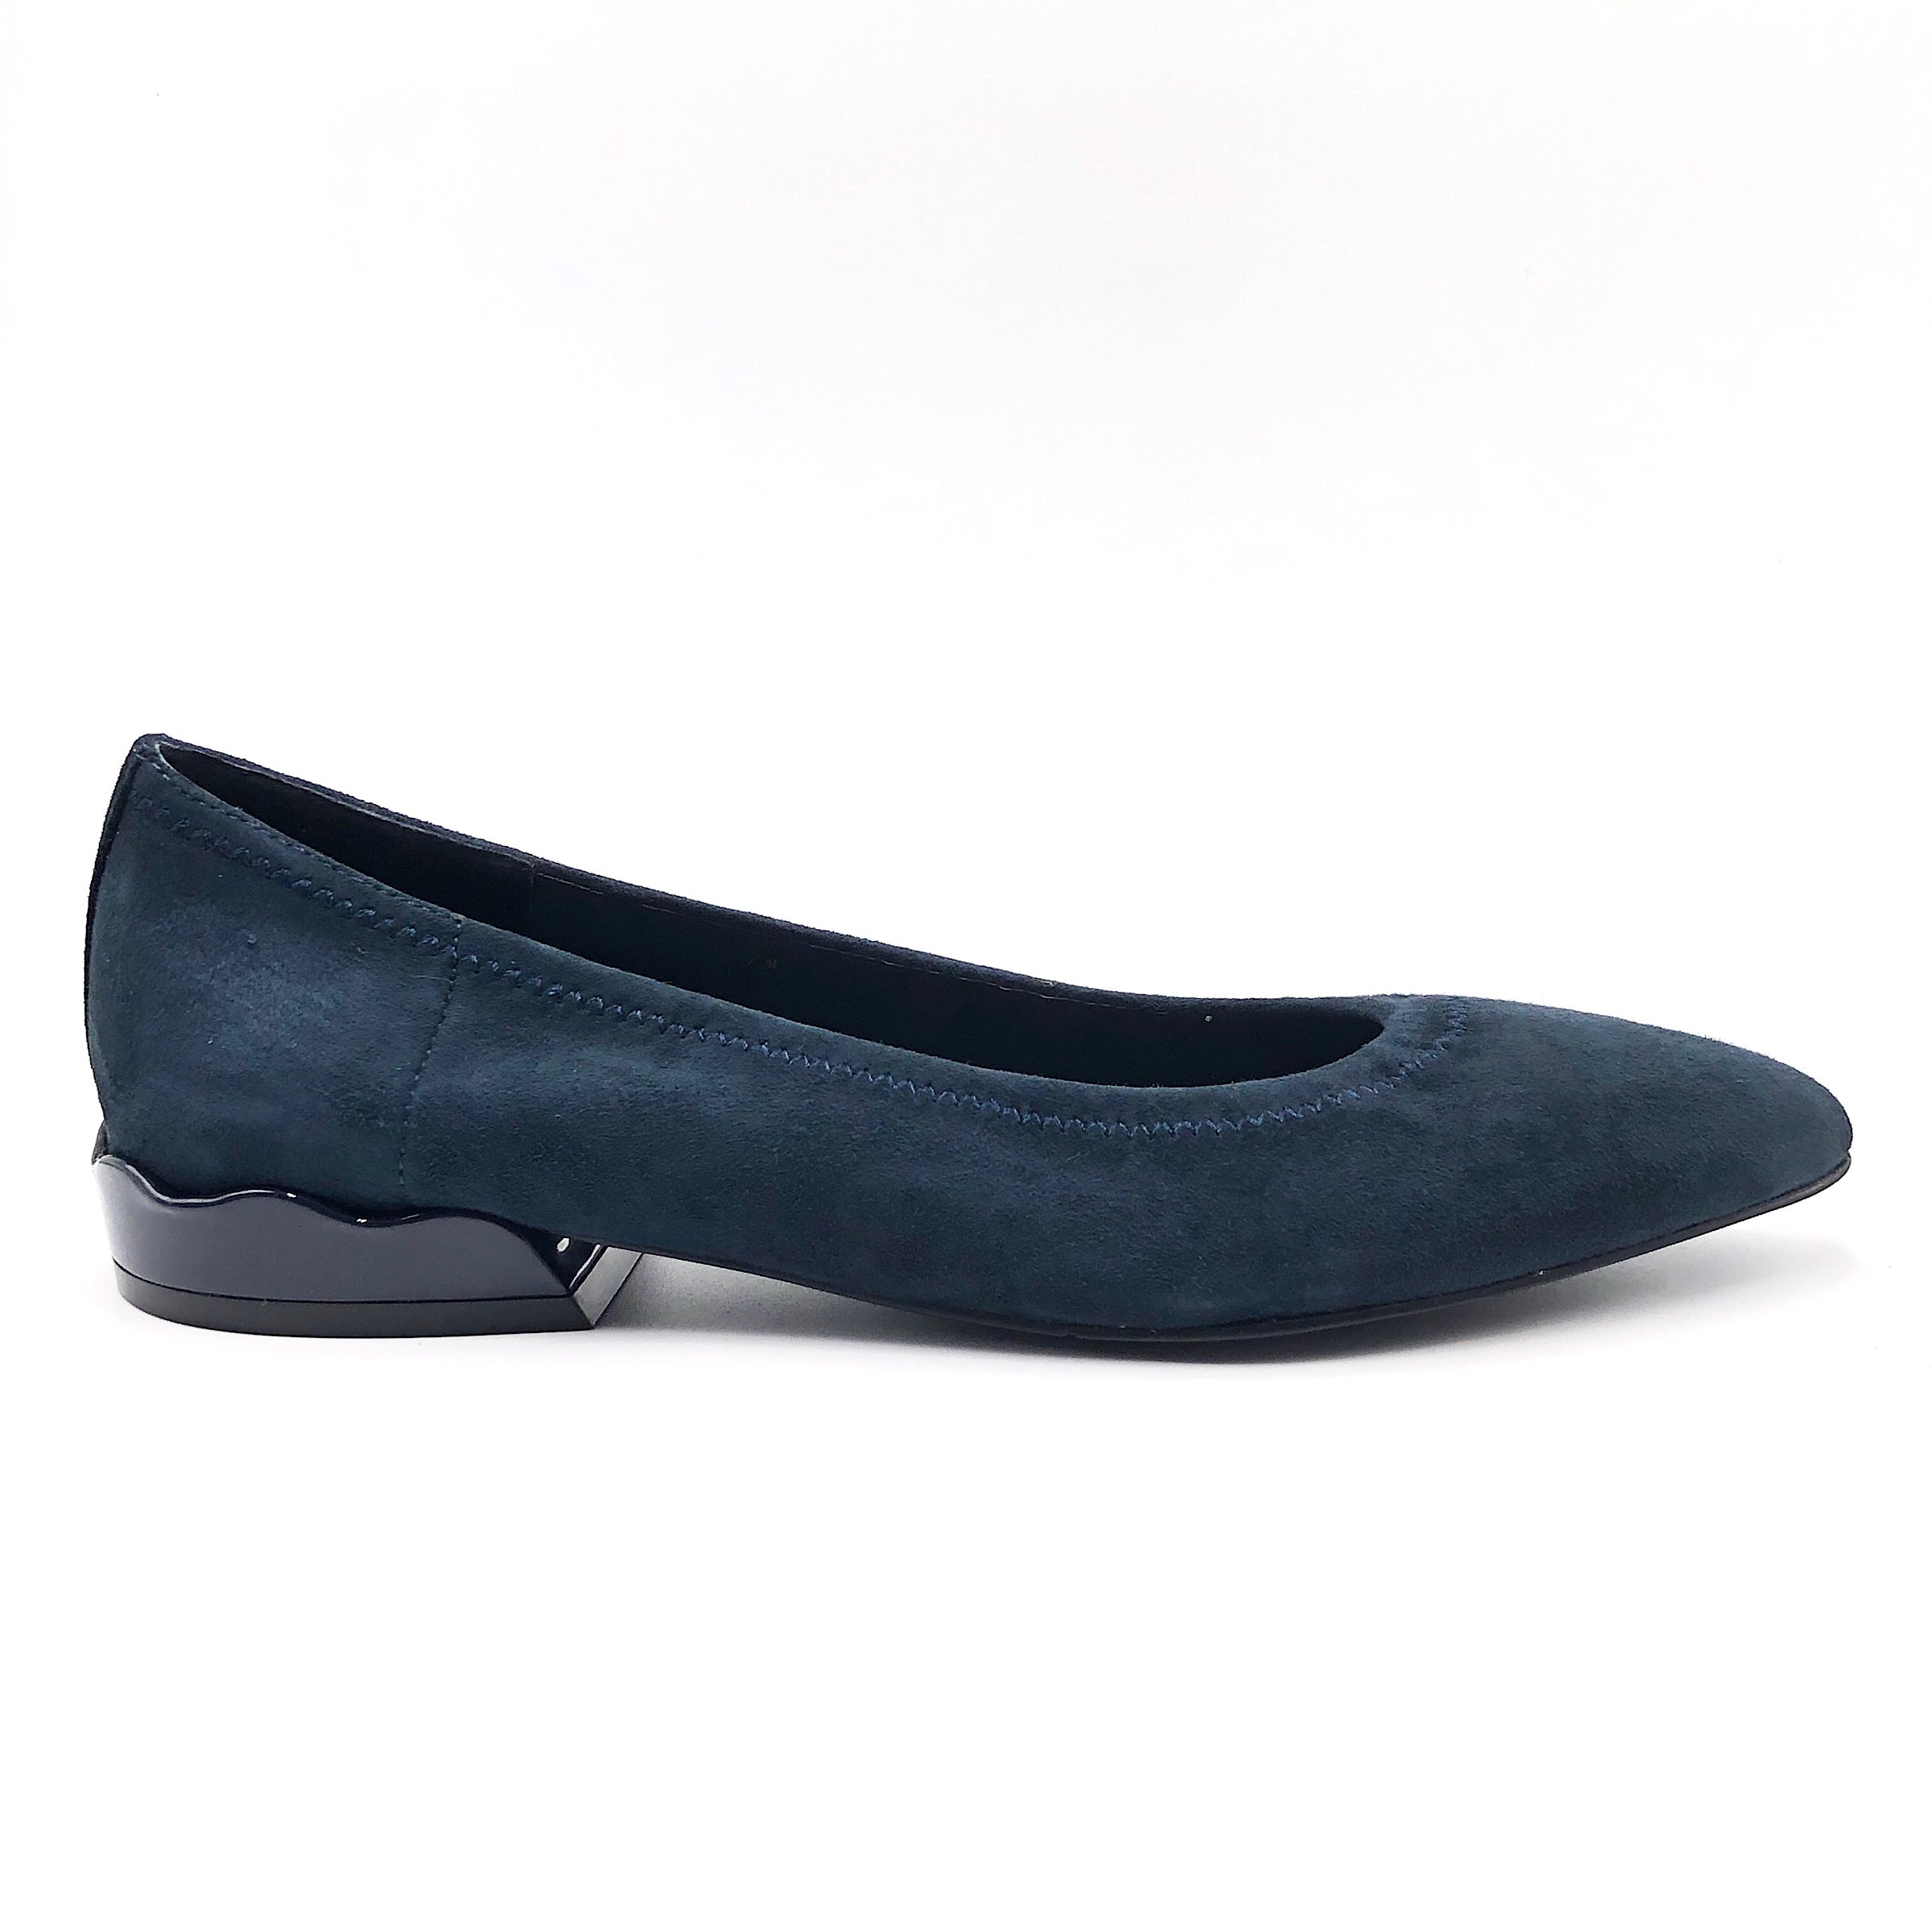 The Scallop Heel Flat in Navy